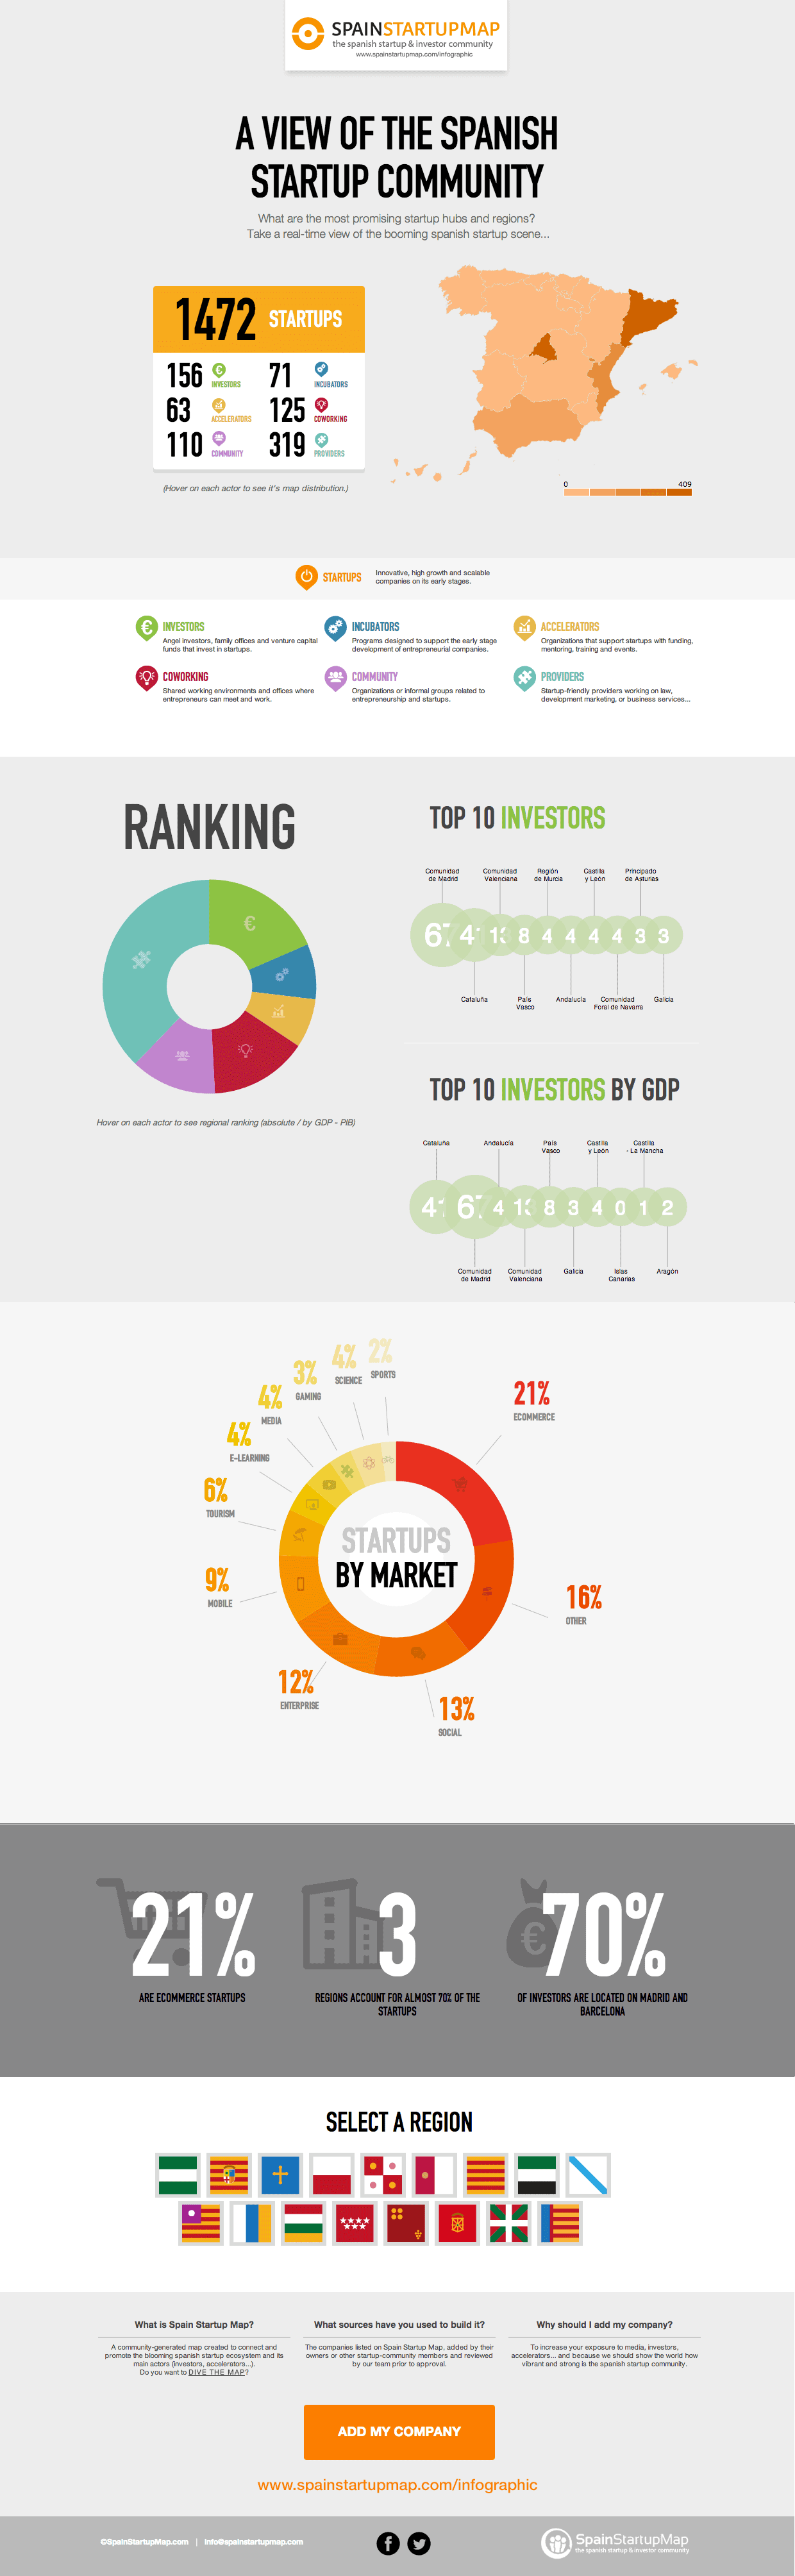 spain-startup-map-infographic-investors-entrepreneurship-jan2014-1-1